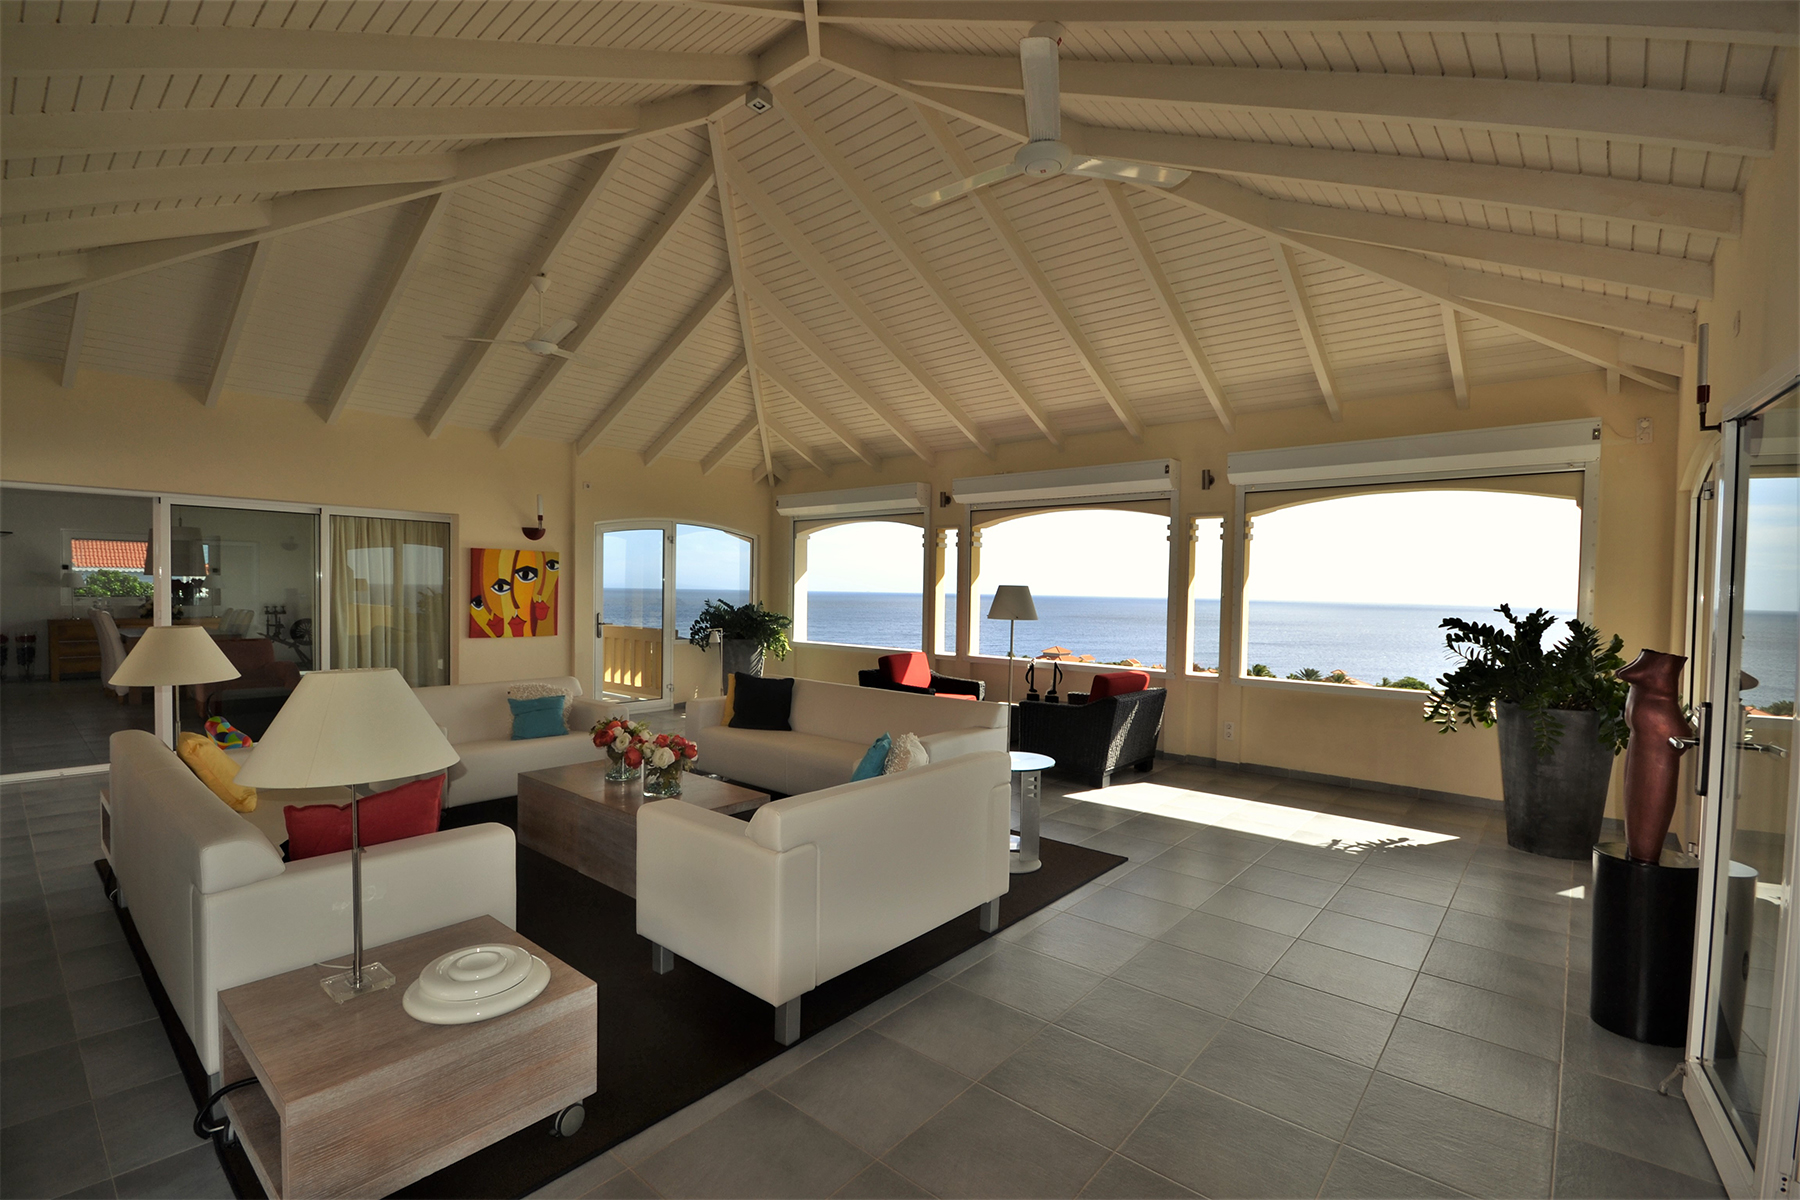 Additional photo for property listing at Coral Estate 217 Other Cities In Curacao, Cities In Curacao Curacao